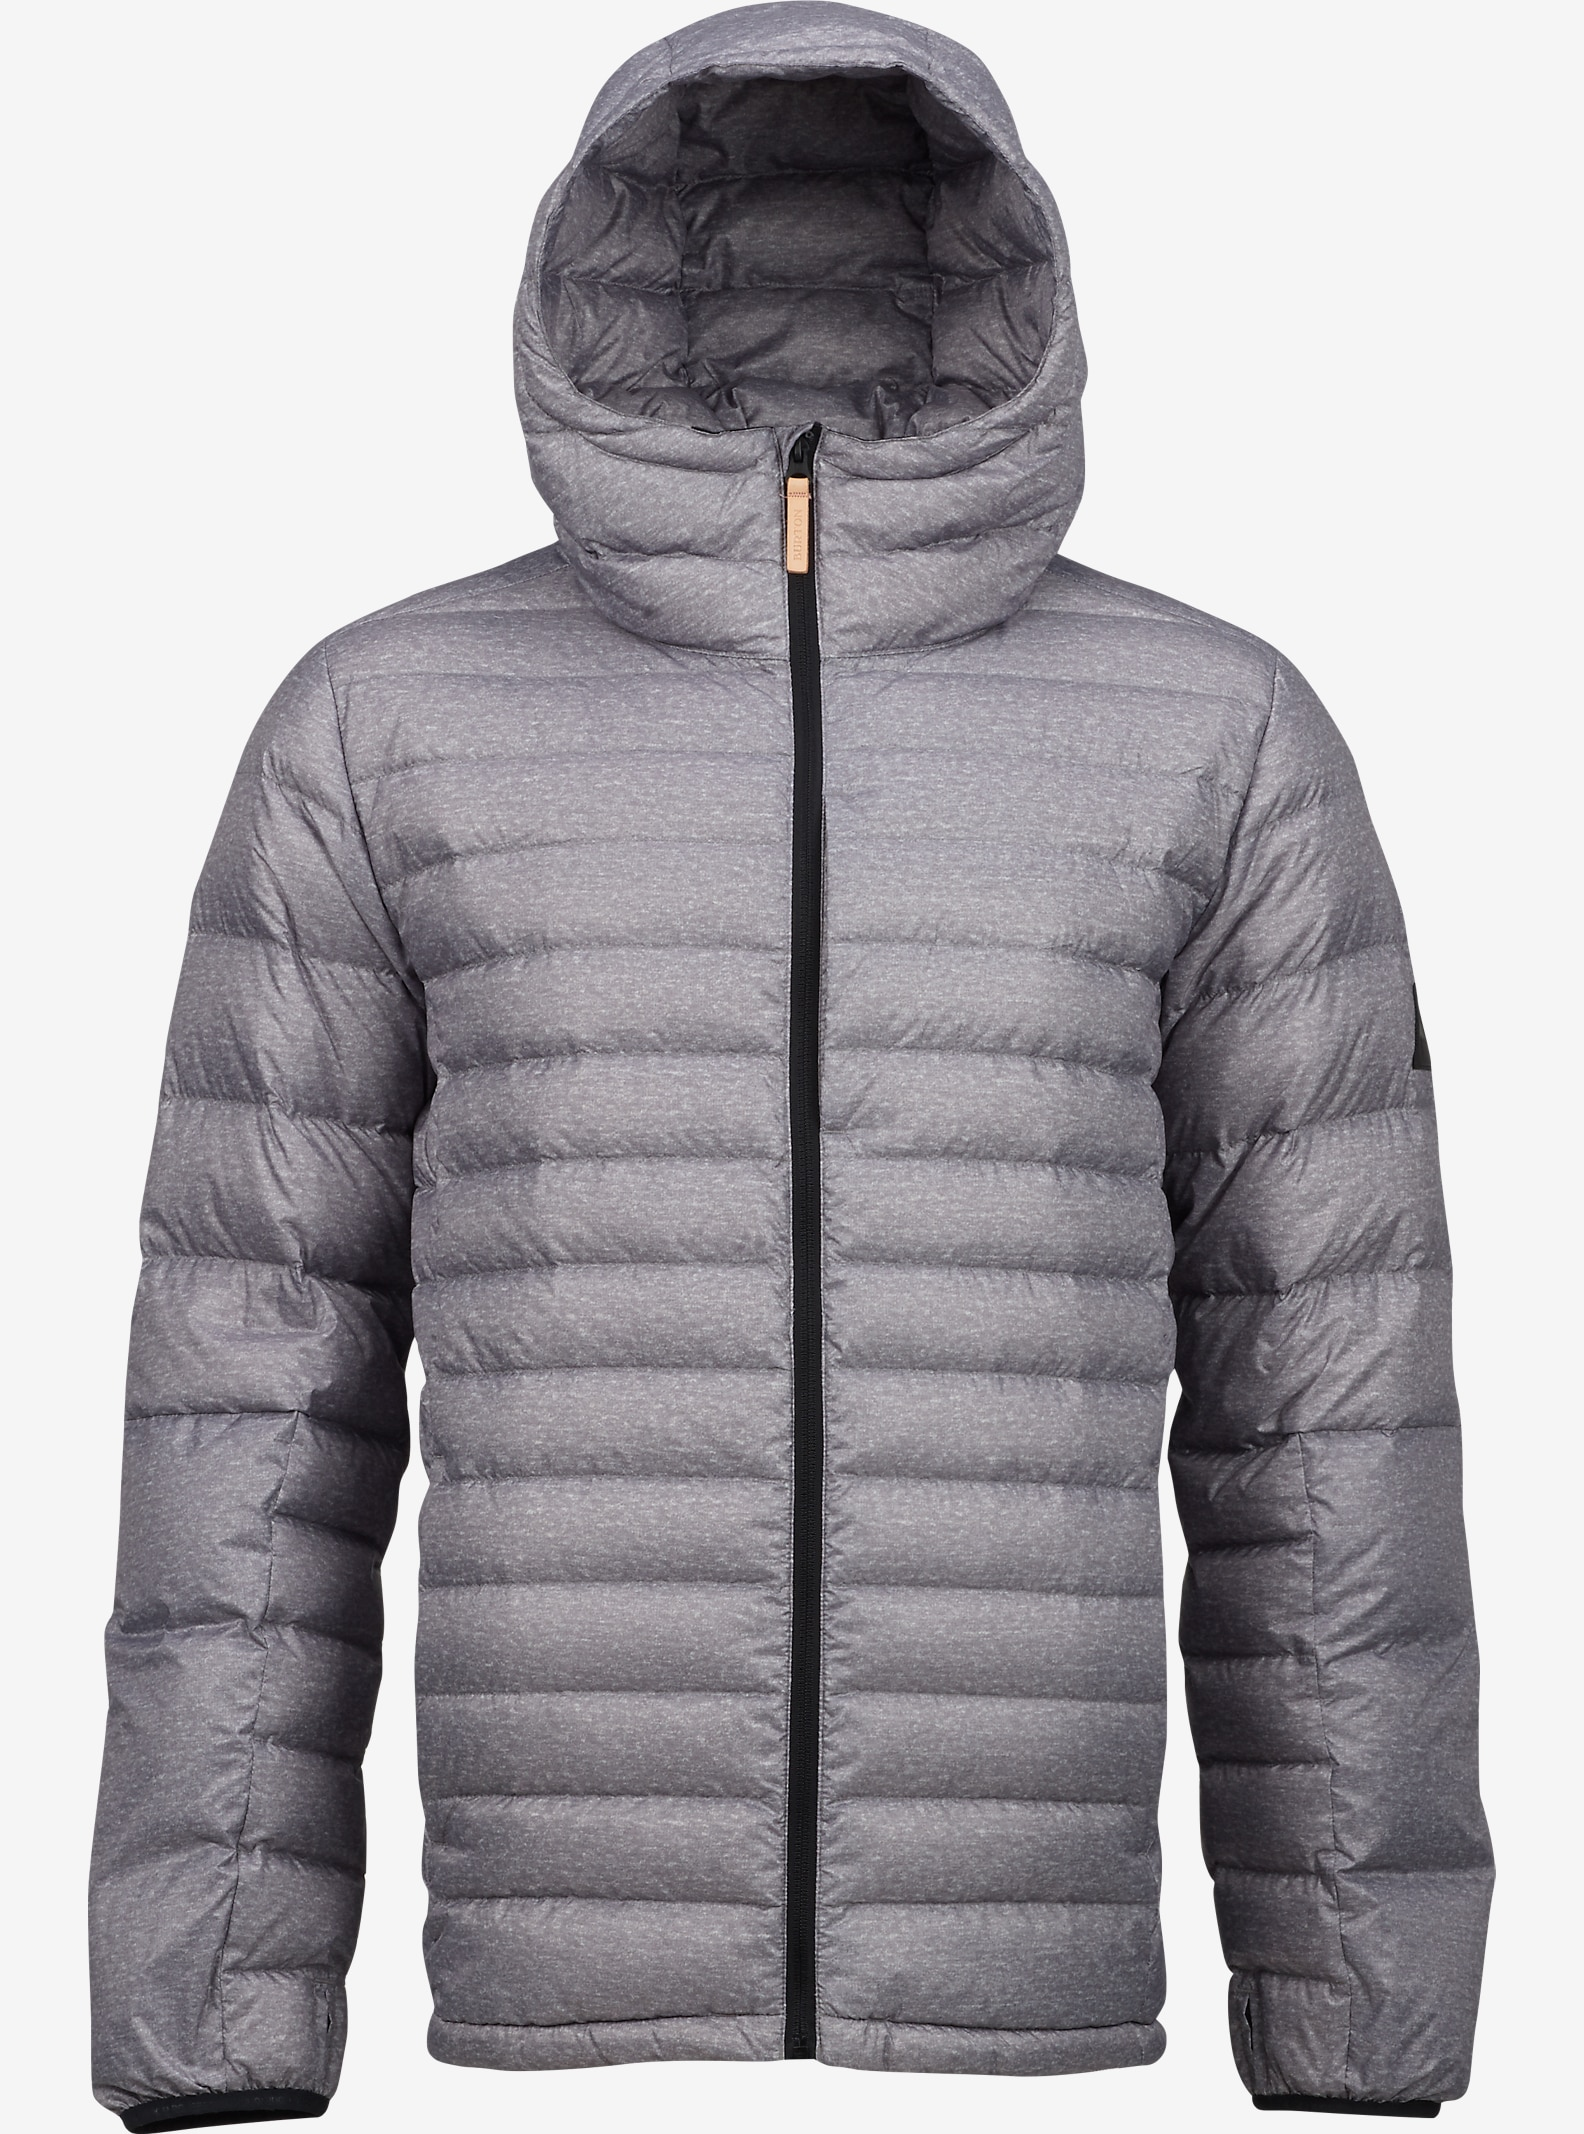 Burton Evergreen Hooded Down Insulator shown in Gray Heather